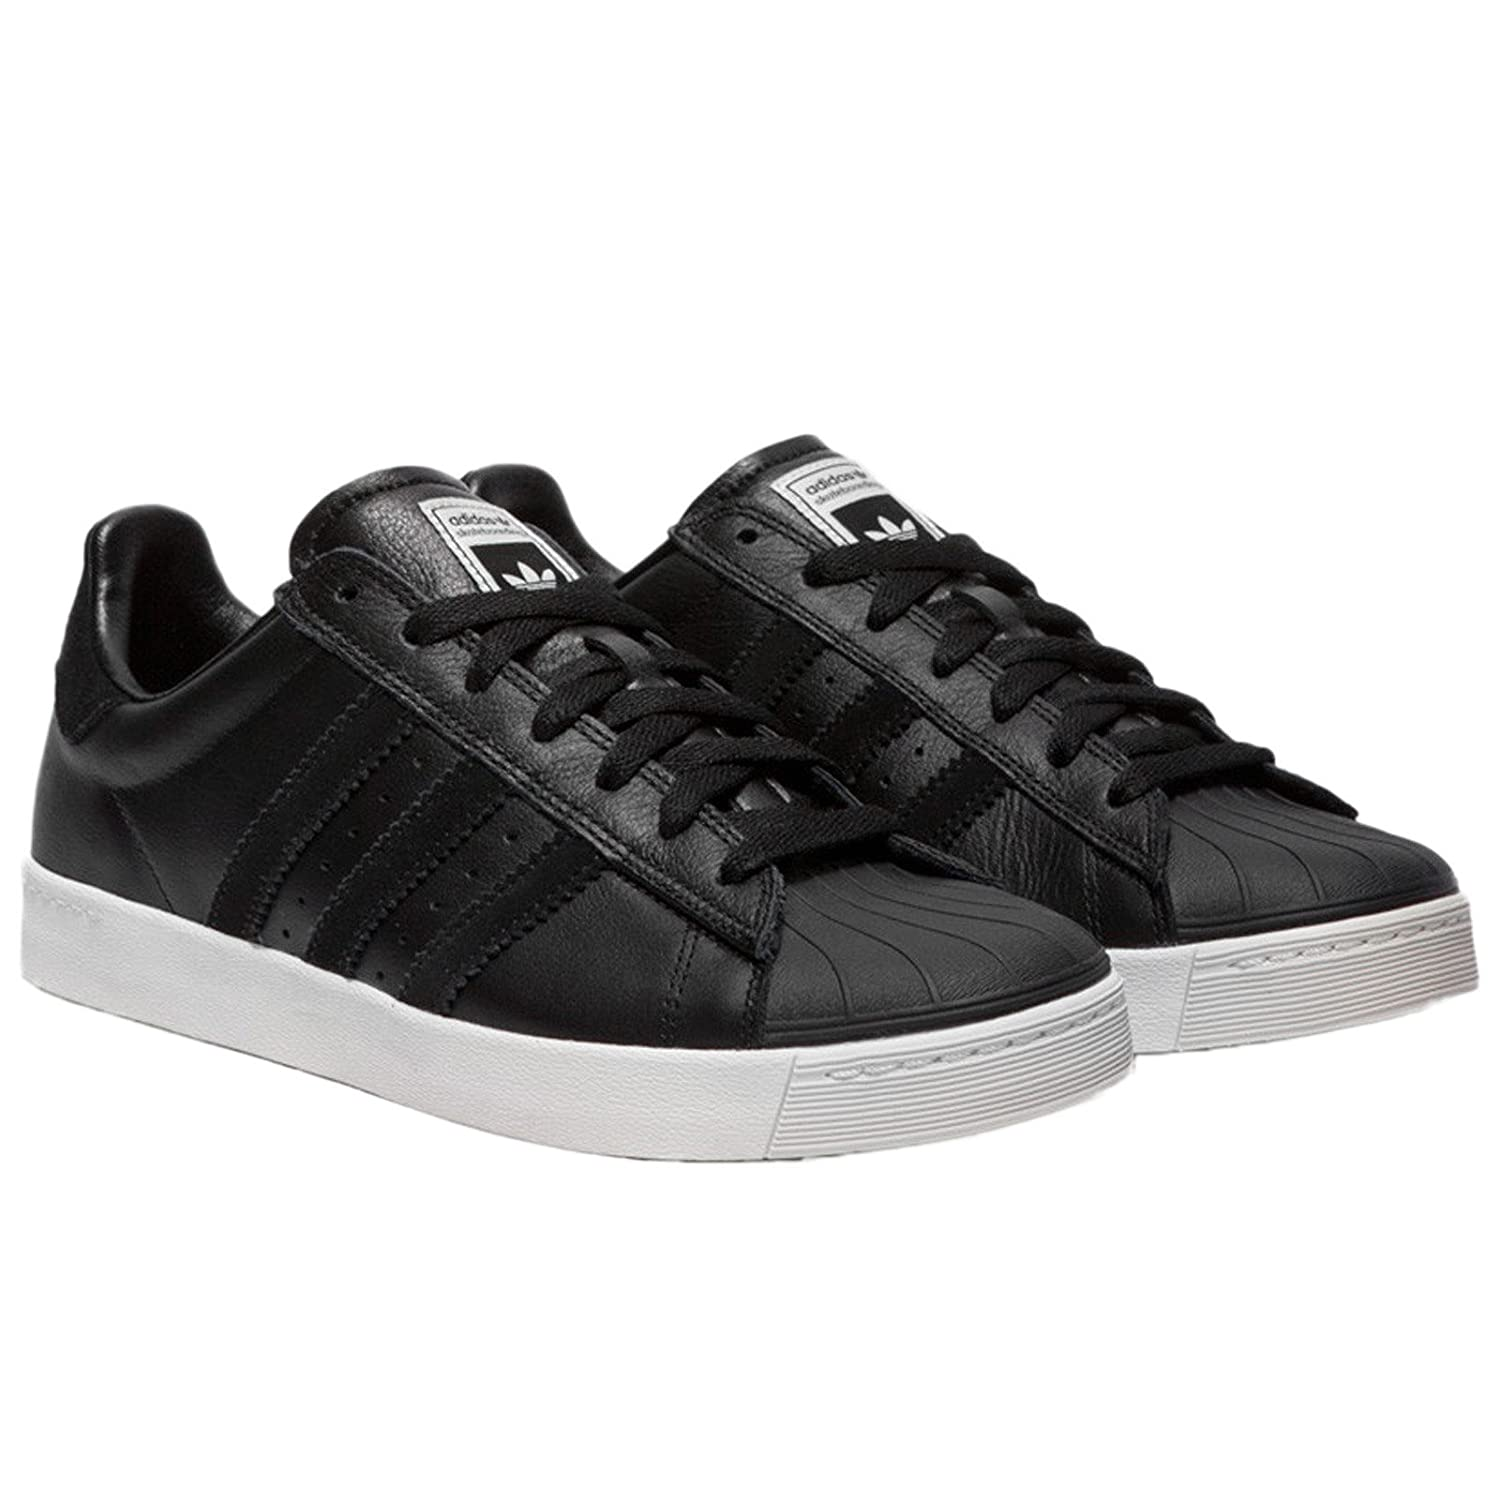 check out 932c8 1ea0a Adidas Superstar Vulc Adv nero scarpe scarpe scarpe da ginnastica - Scarpe  Da Ginnastica Nere In Pelle ...